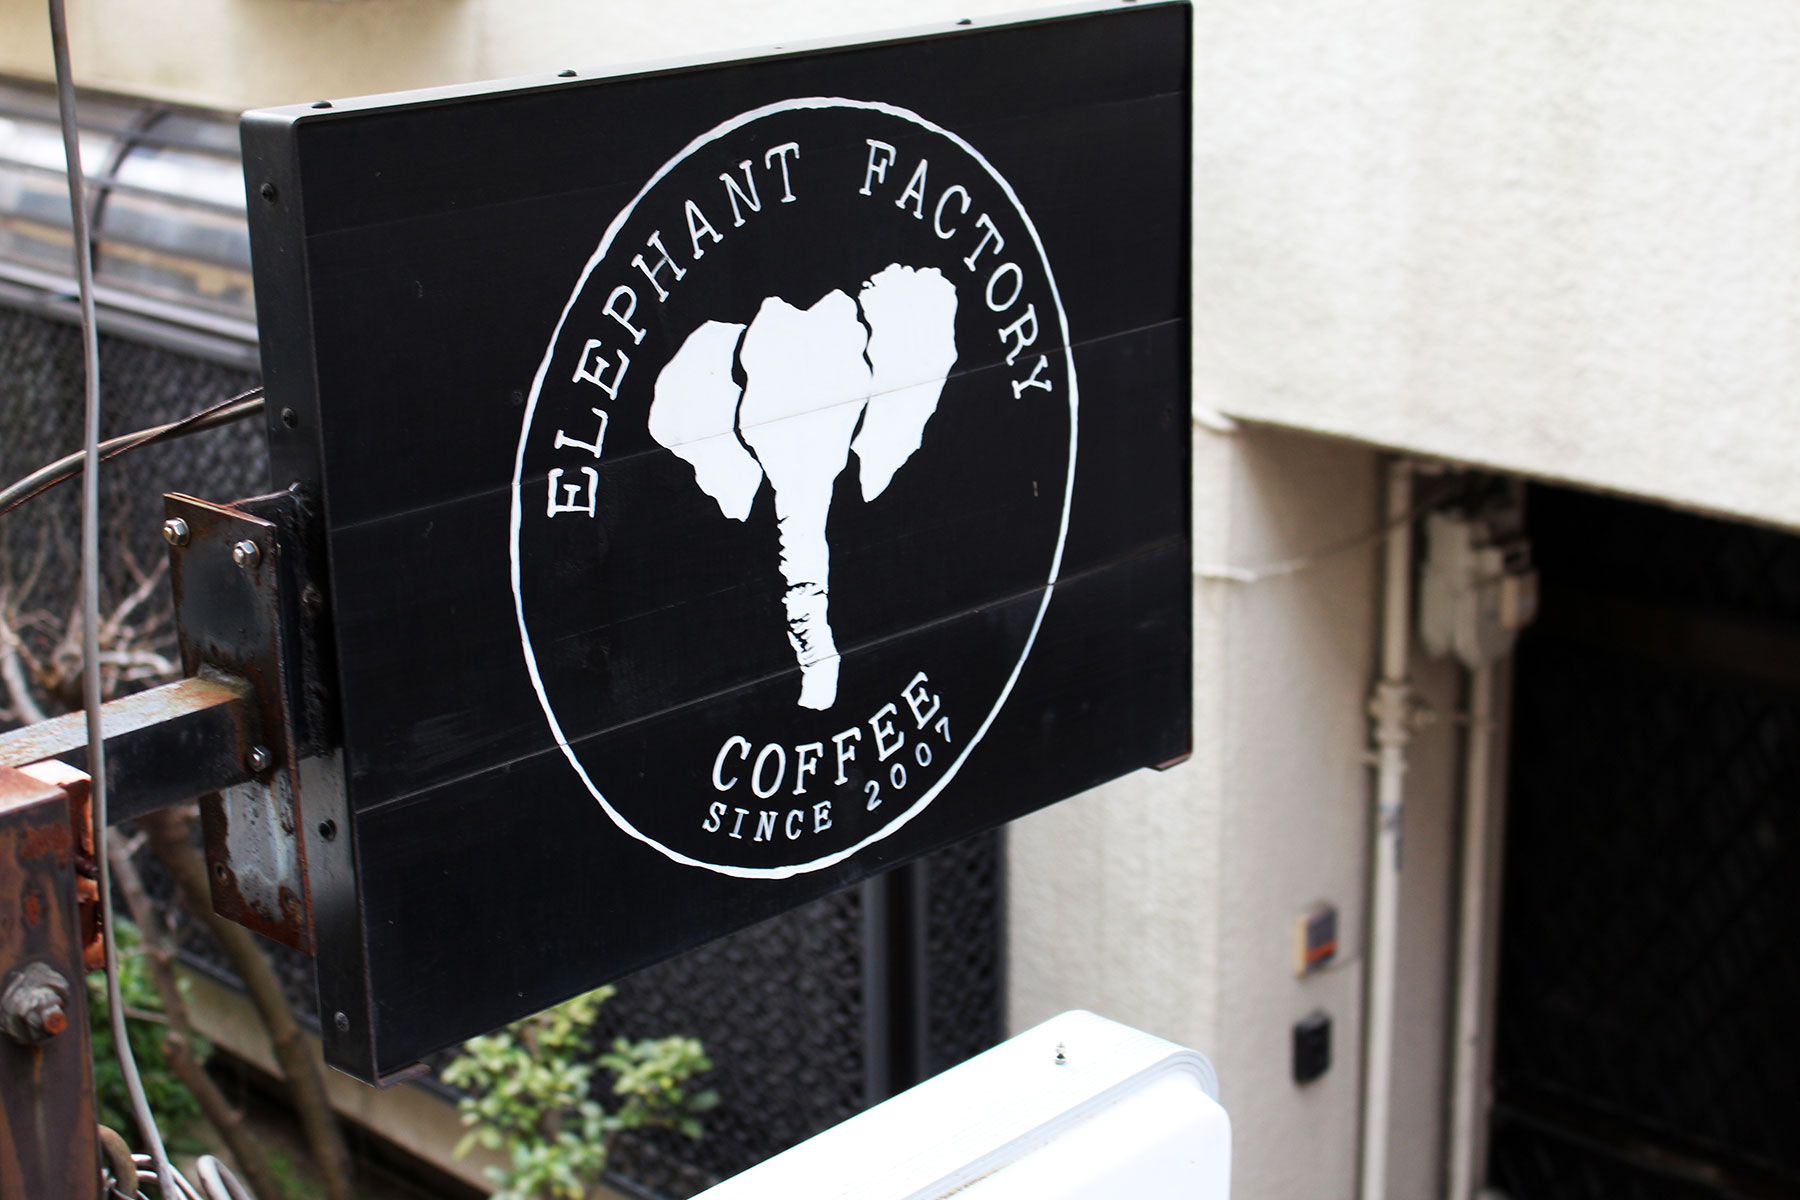 ELEPHANT FACTORY COFFEE (エレファントファクトリーコーヒー) 京都